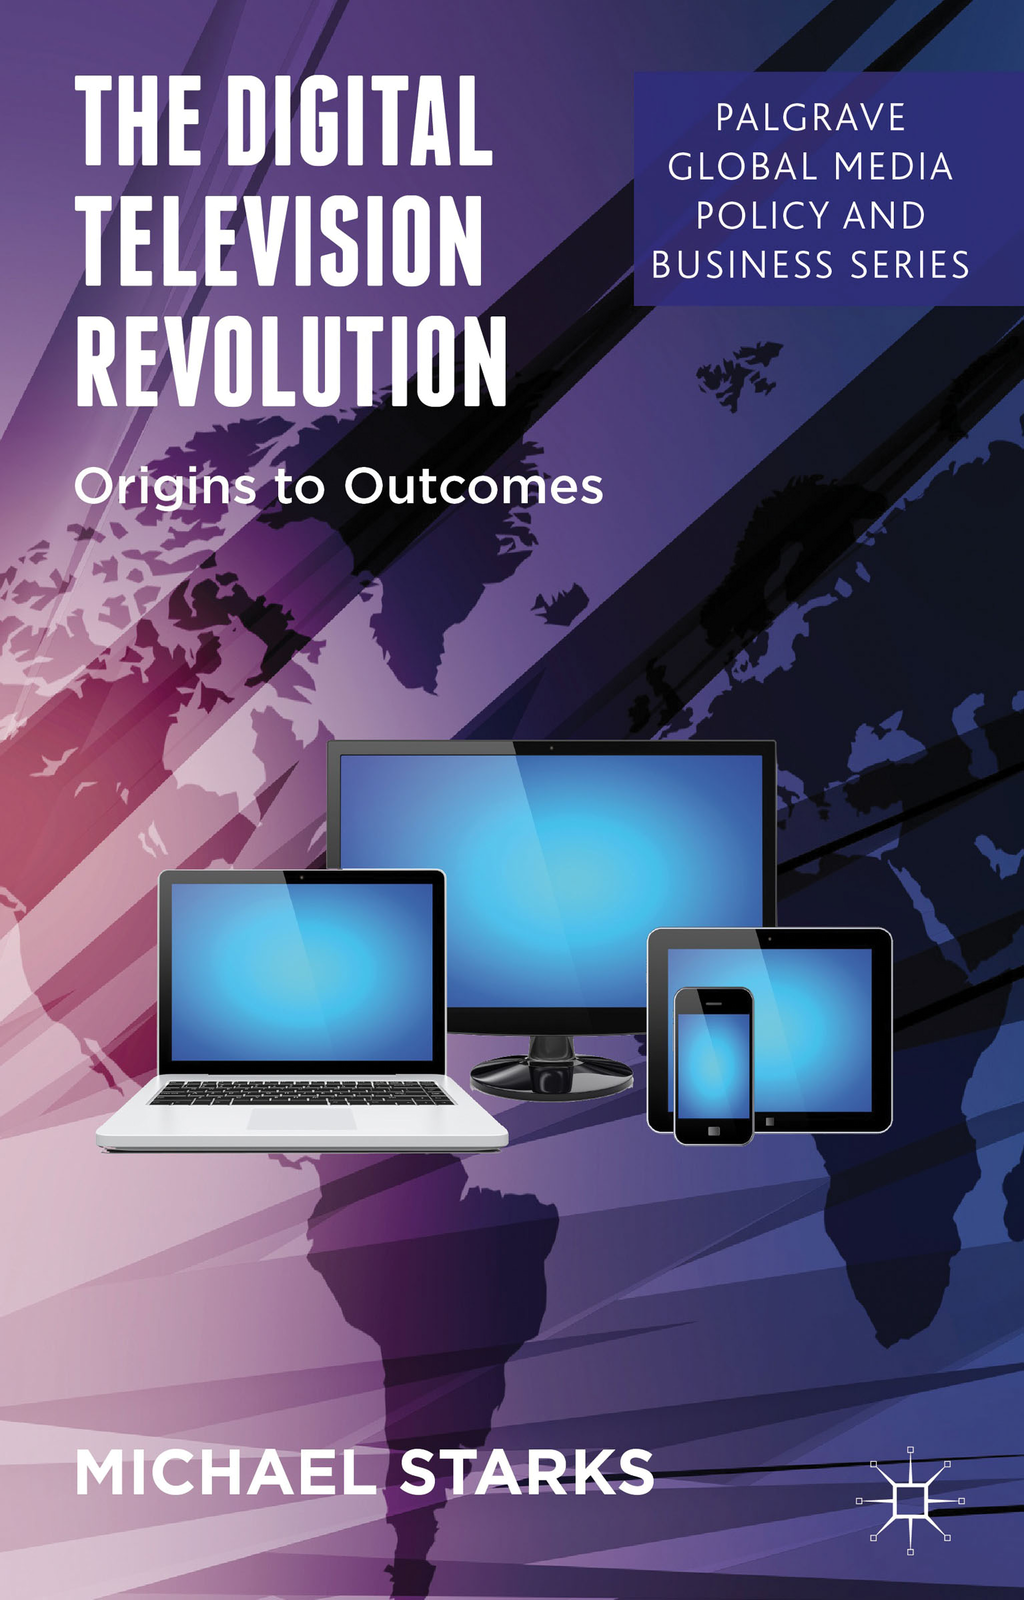 The Digital Television Revolution Origins to Outcomes